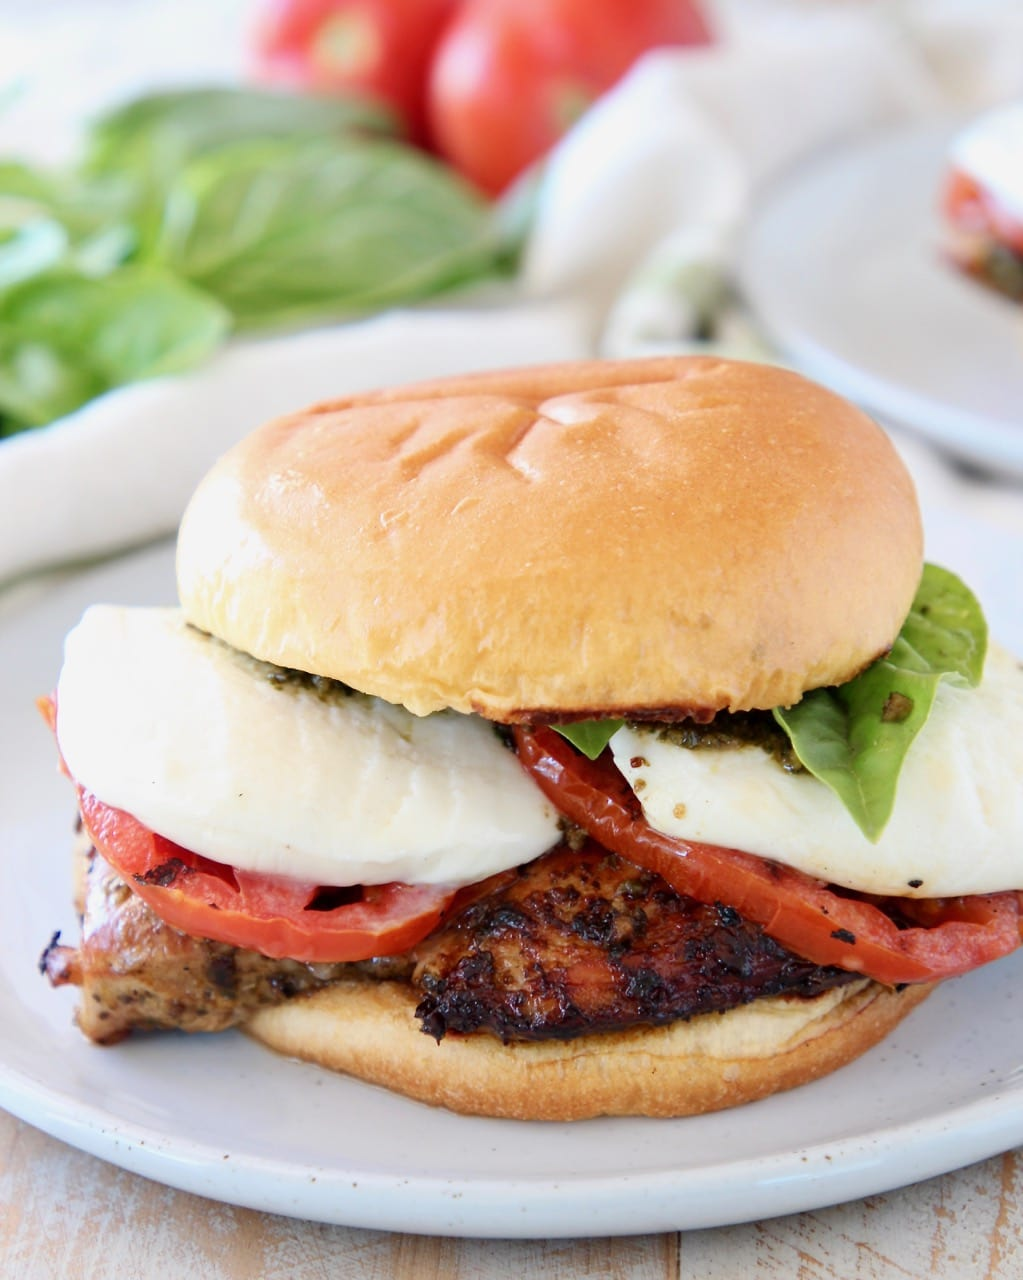 Grilled chicken sandwich with tomatoes and mozzarella cheese on white plate